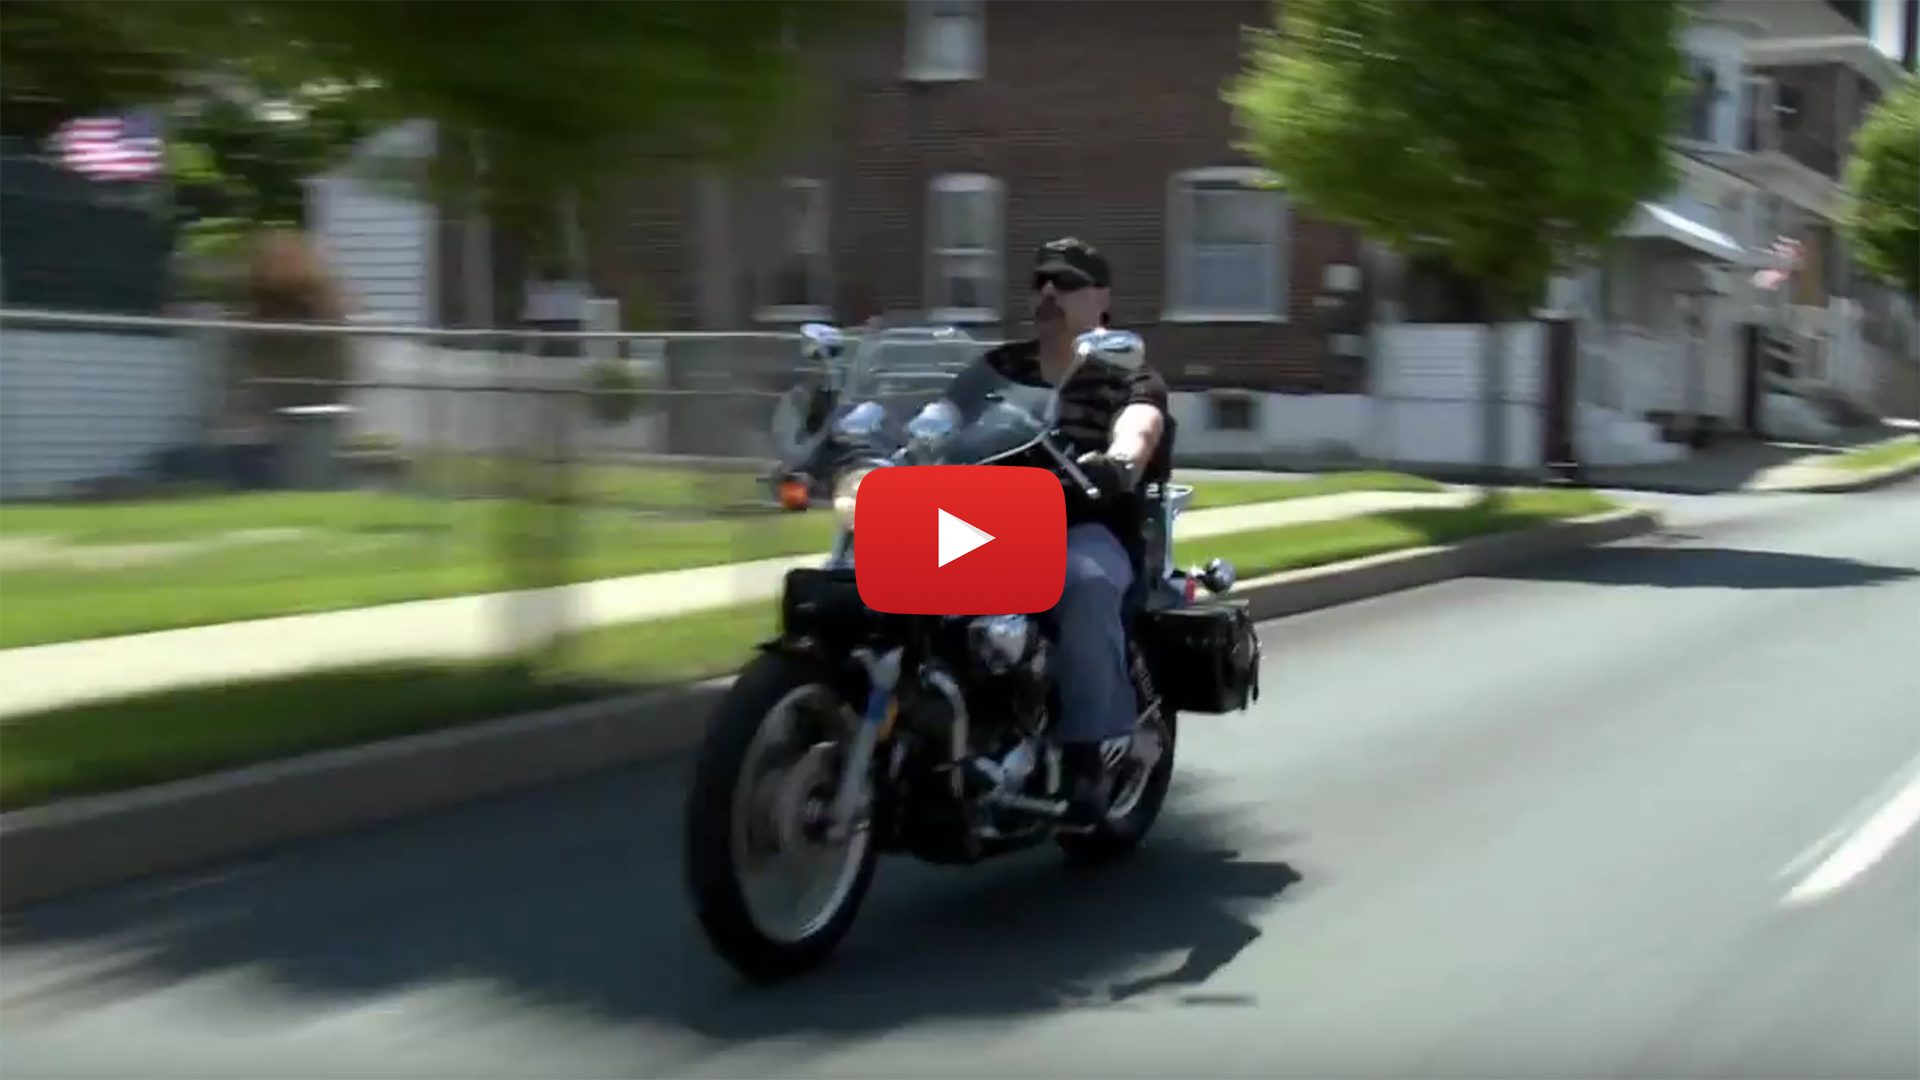 Joe Bordonaro on motorcycle